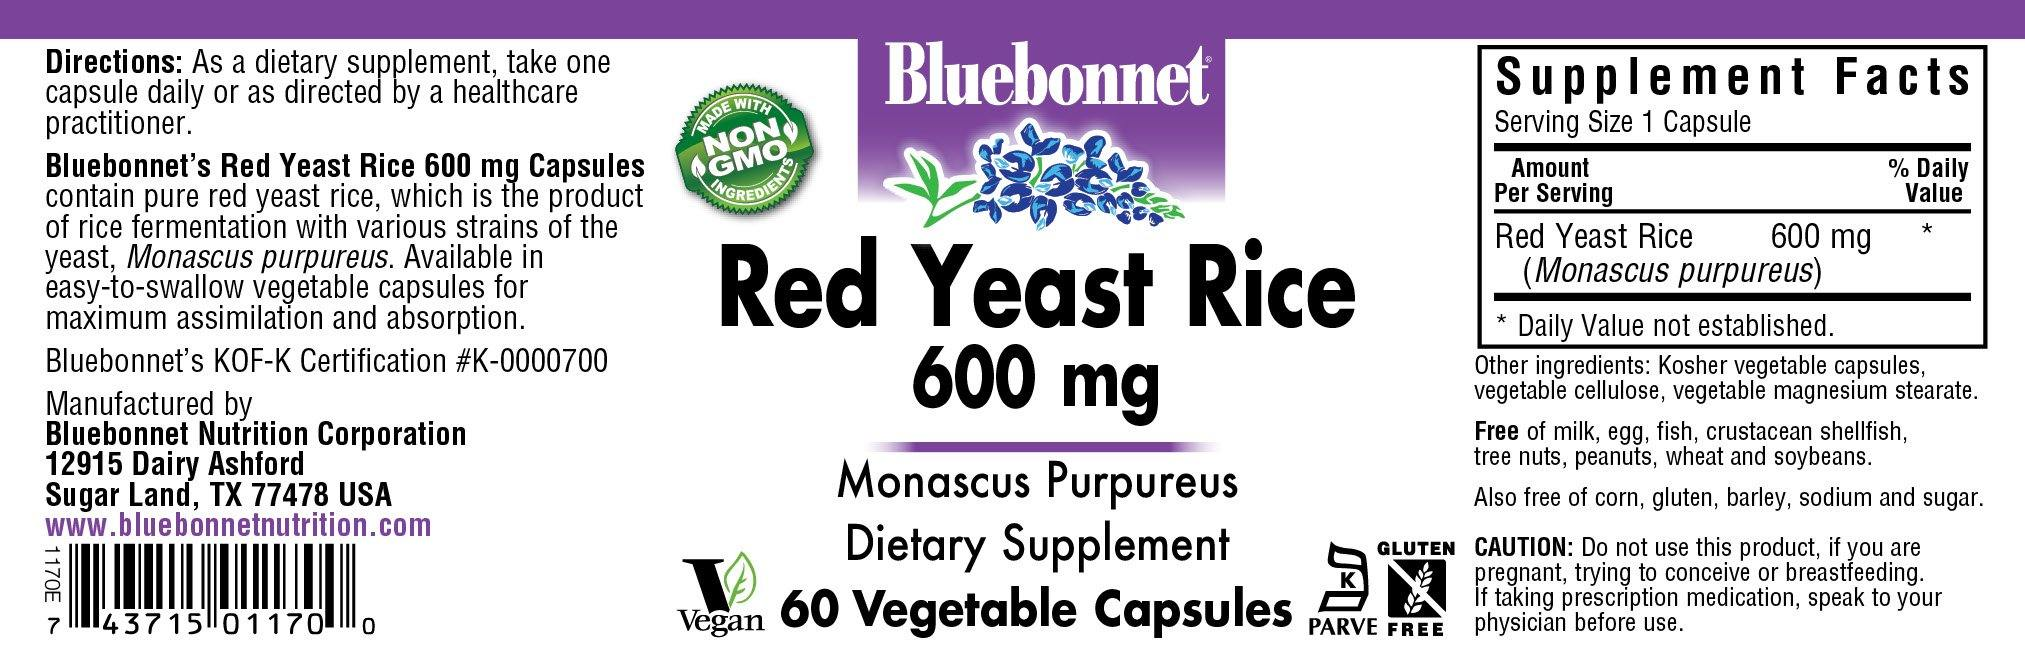 Blue Bonnet- RED YEAST RICE 600 mg60